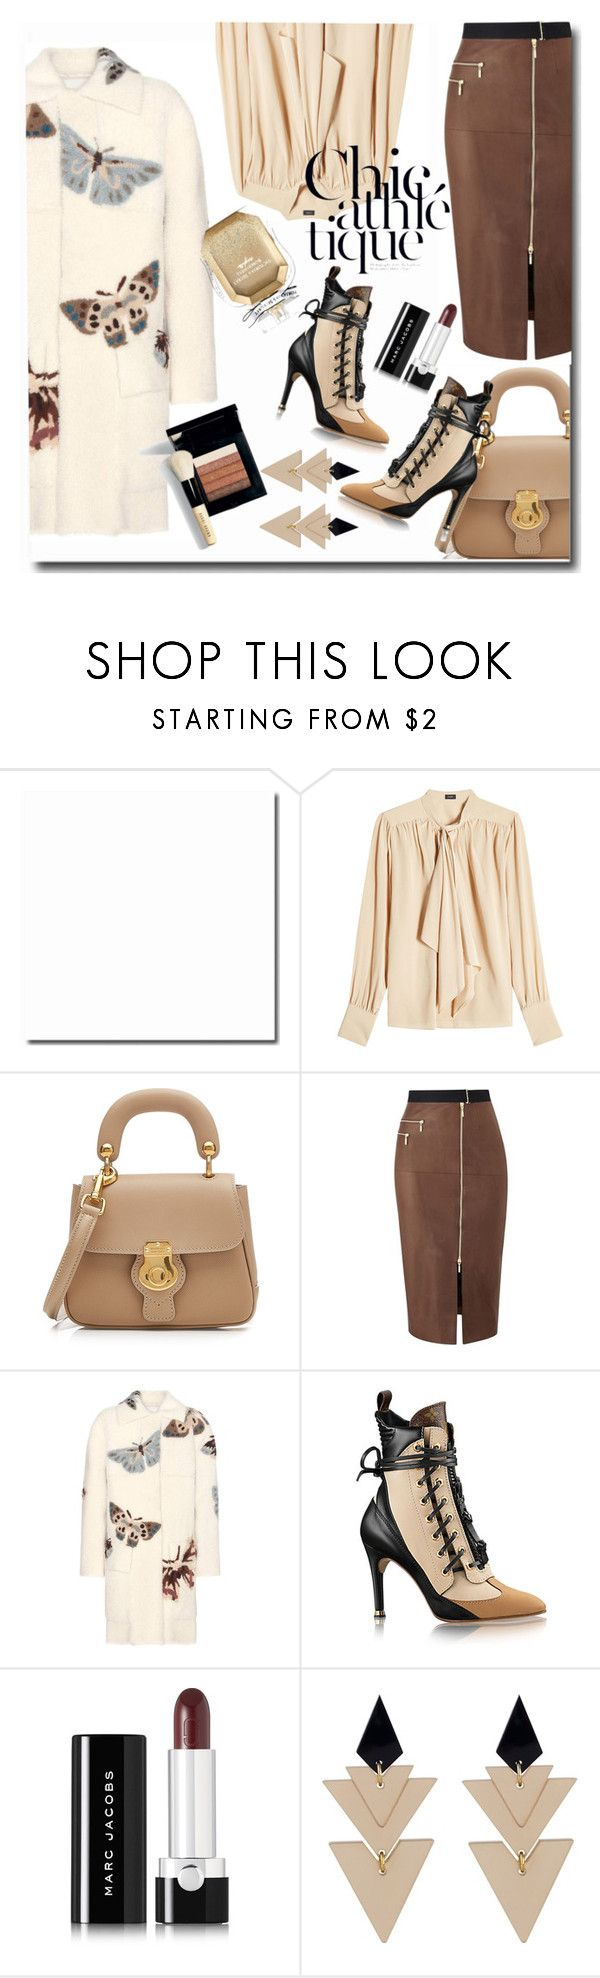 """Untitled #931"" by pesanjsp ❤ liked on Polyvore featuring Joseph, Burberry, Amanda Wakeley, Valentino, Marc Jacobs, Toolally, Bobbi Brown Cosmetics and Victoria's Secret"